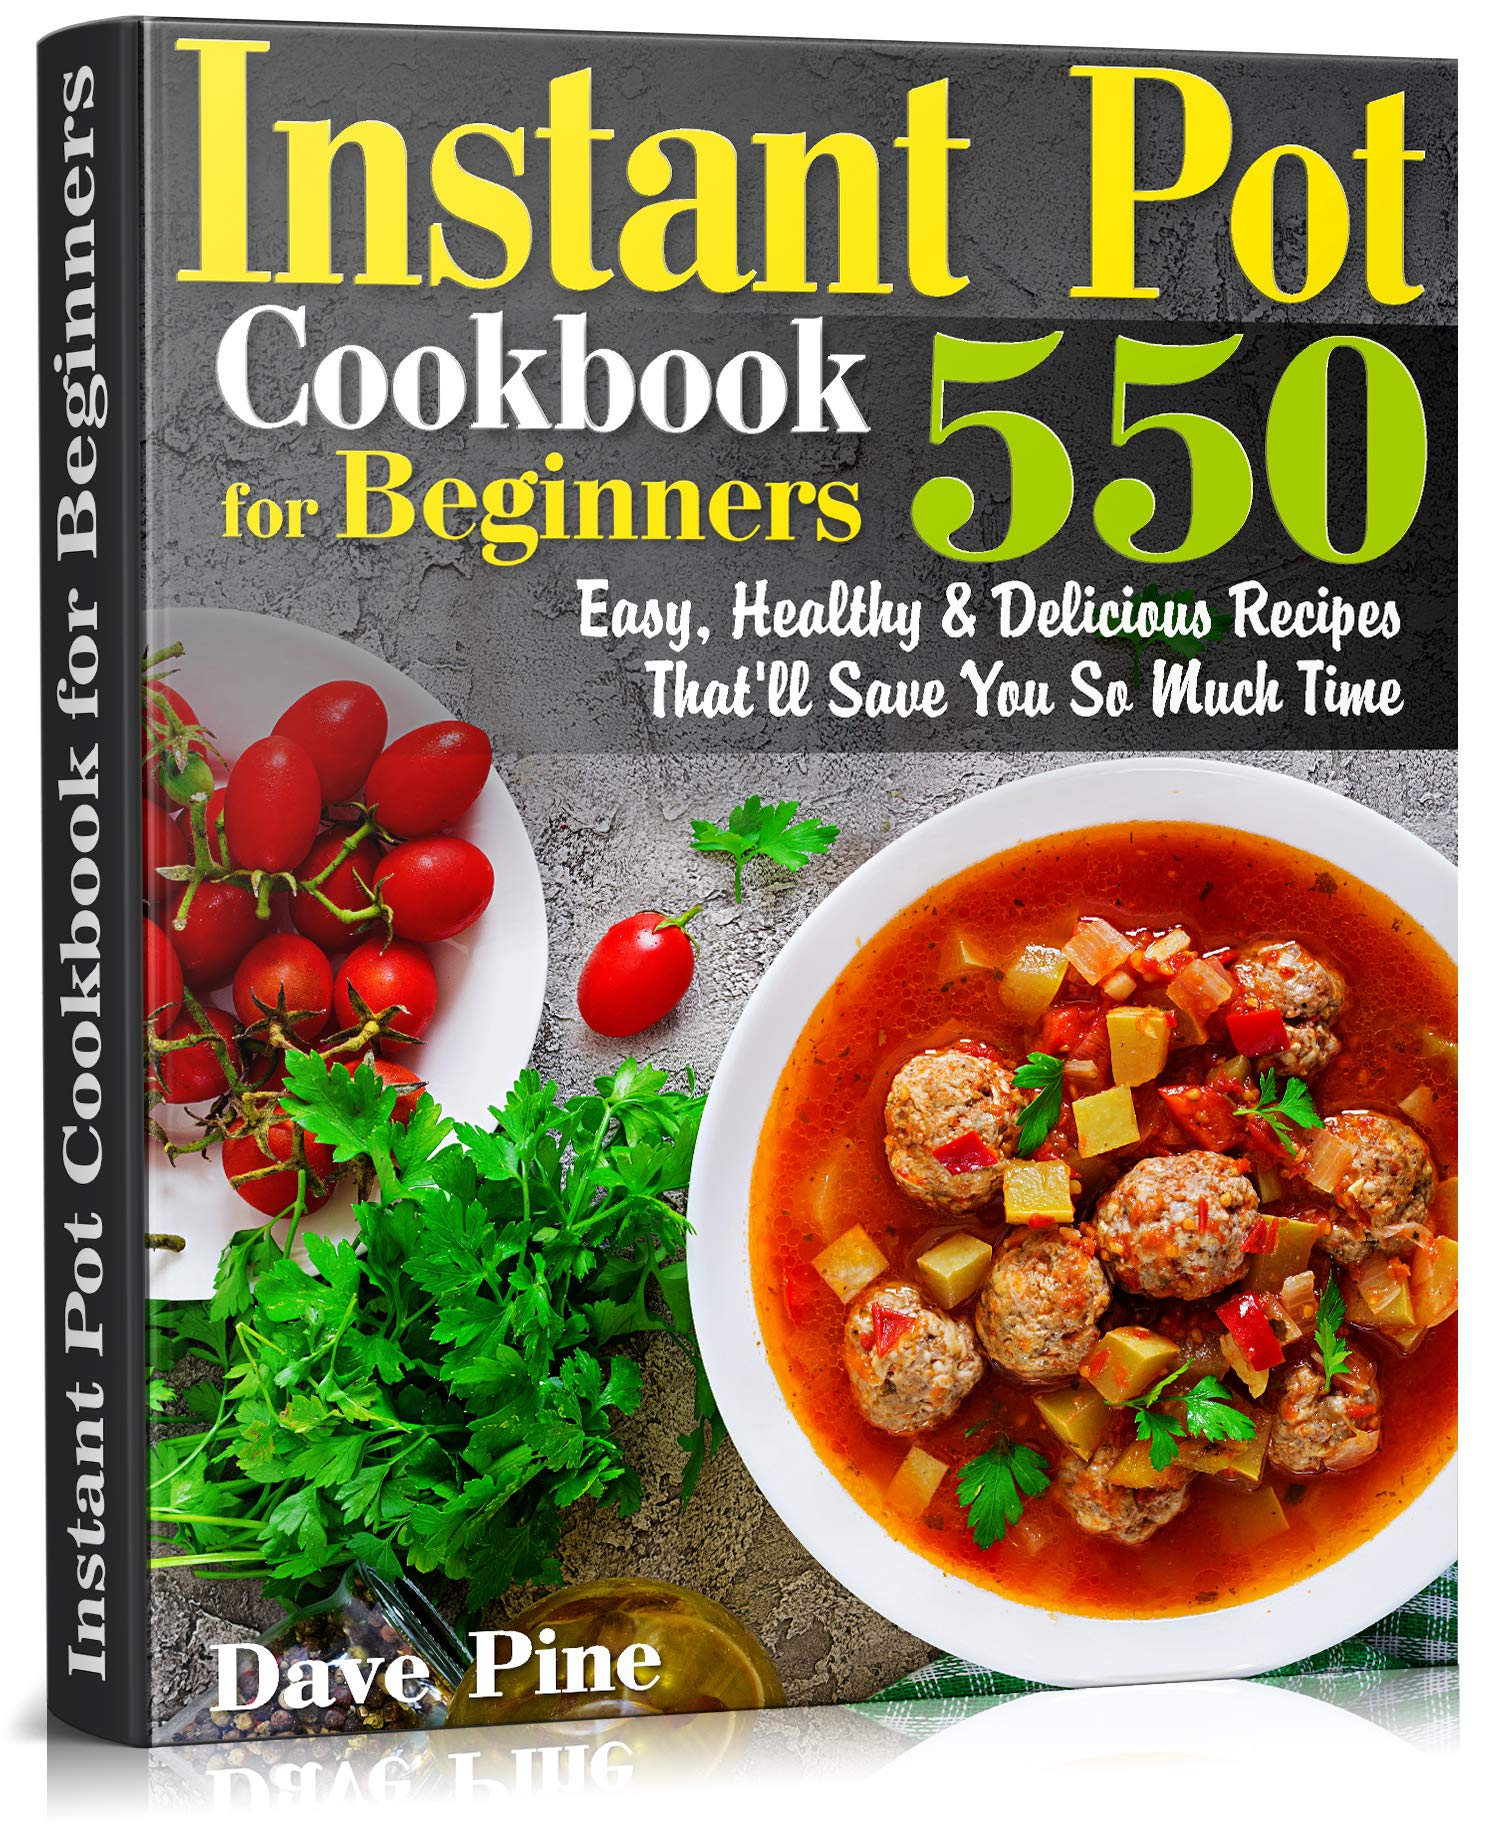 Image OfInstant Pot Cookbook For Beginners: 550 Easy, Healthy And Delicious Recipes That'll Save You So Much Time (English Edition)